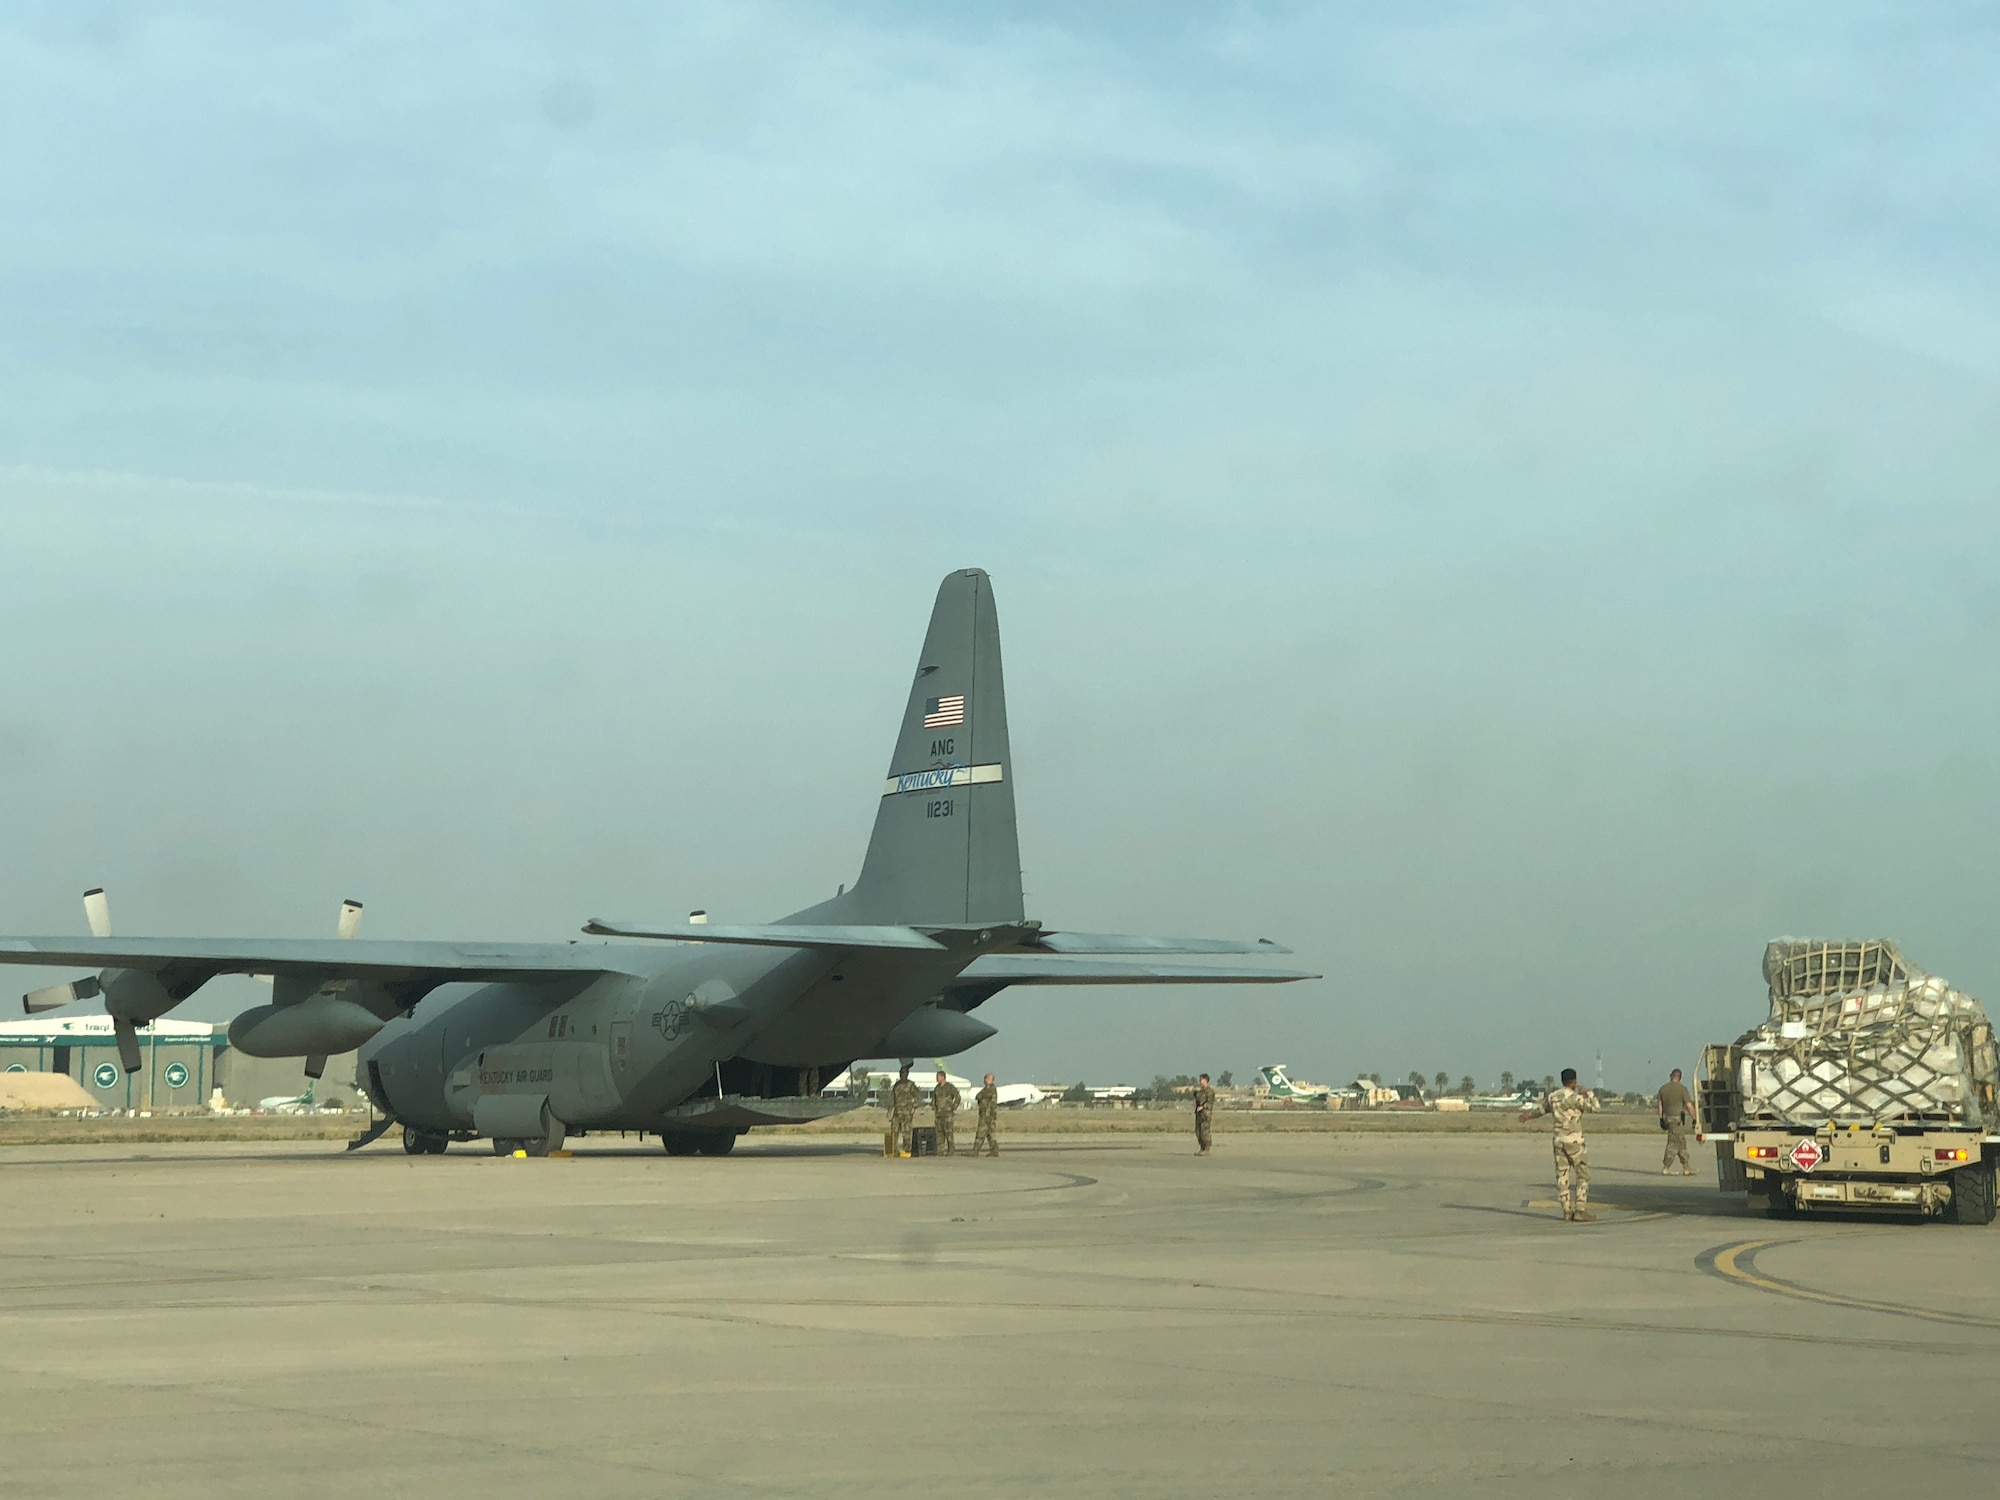 Iraqi Air Force aerial port technicians back up a K-Loader after removing cargo off a C-130 Hercules from the Kentucky Air National Guard, at Al Muthana Air Base, April 5, 2018. The Iraqi aerial port technicians, along with 370th Air Expeditionary Advisory Group air advisor observers, who are part of the Coalition Aviation Advisory and Training Team, worked together to off-load cargo and load three C-130J Super Hercules engines on to U.S. Air Force aircraft, being sent back to the manufacturer for maintenance. (Courtesy Photo)